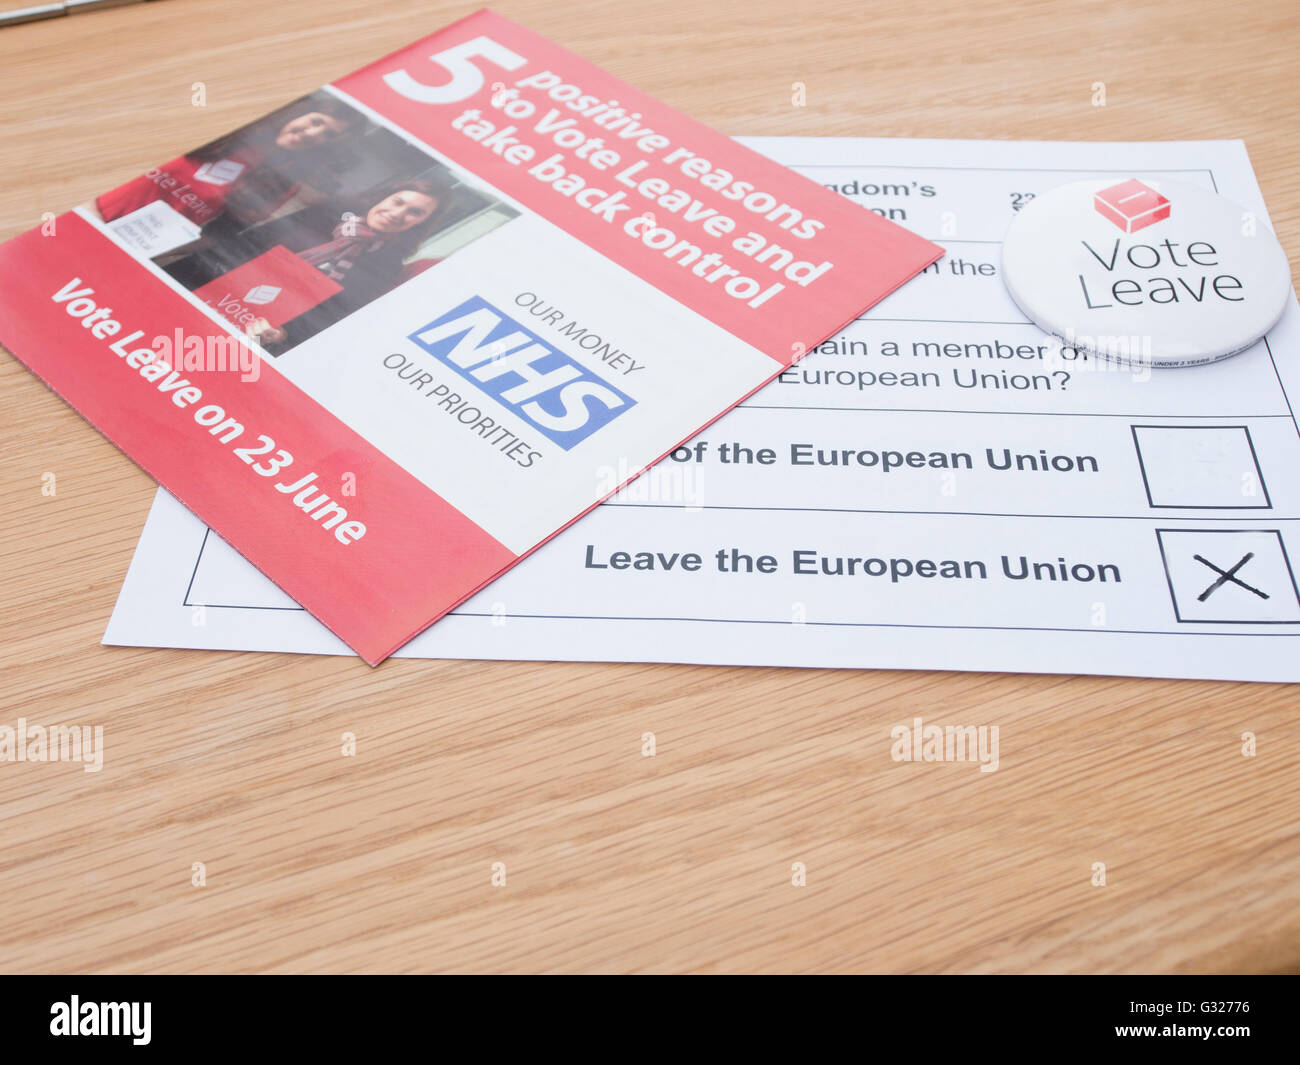 Exeter UK 7 June 2016 EU referendum voting by postal ballot  badge vote leave, campaign leaflet - Stock Image